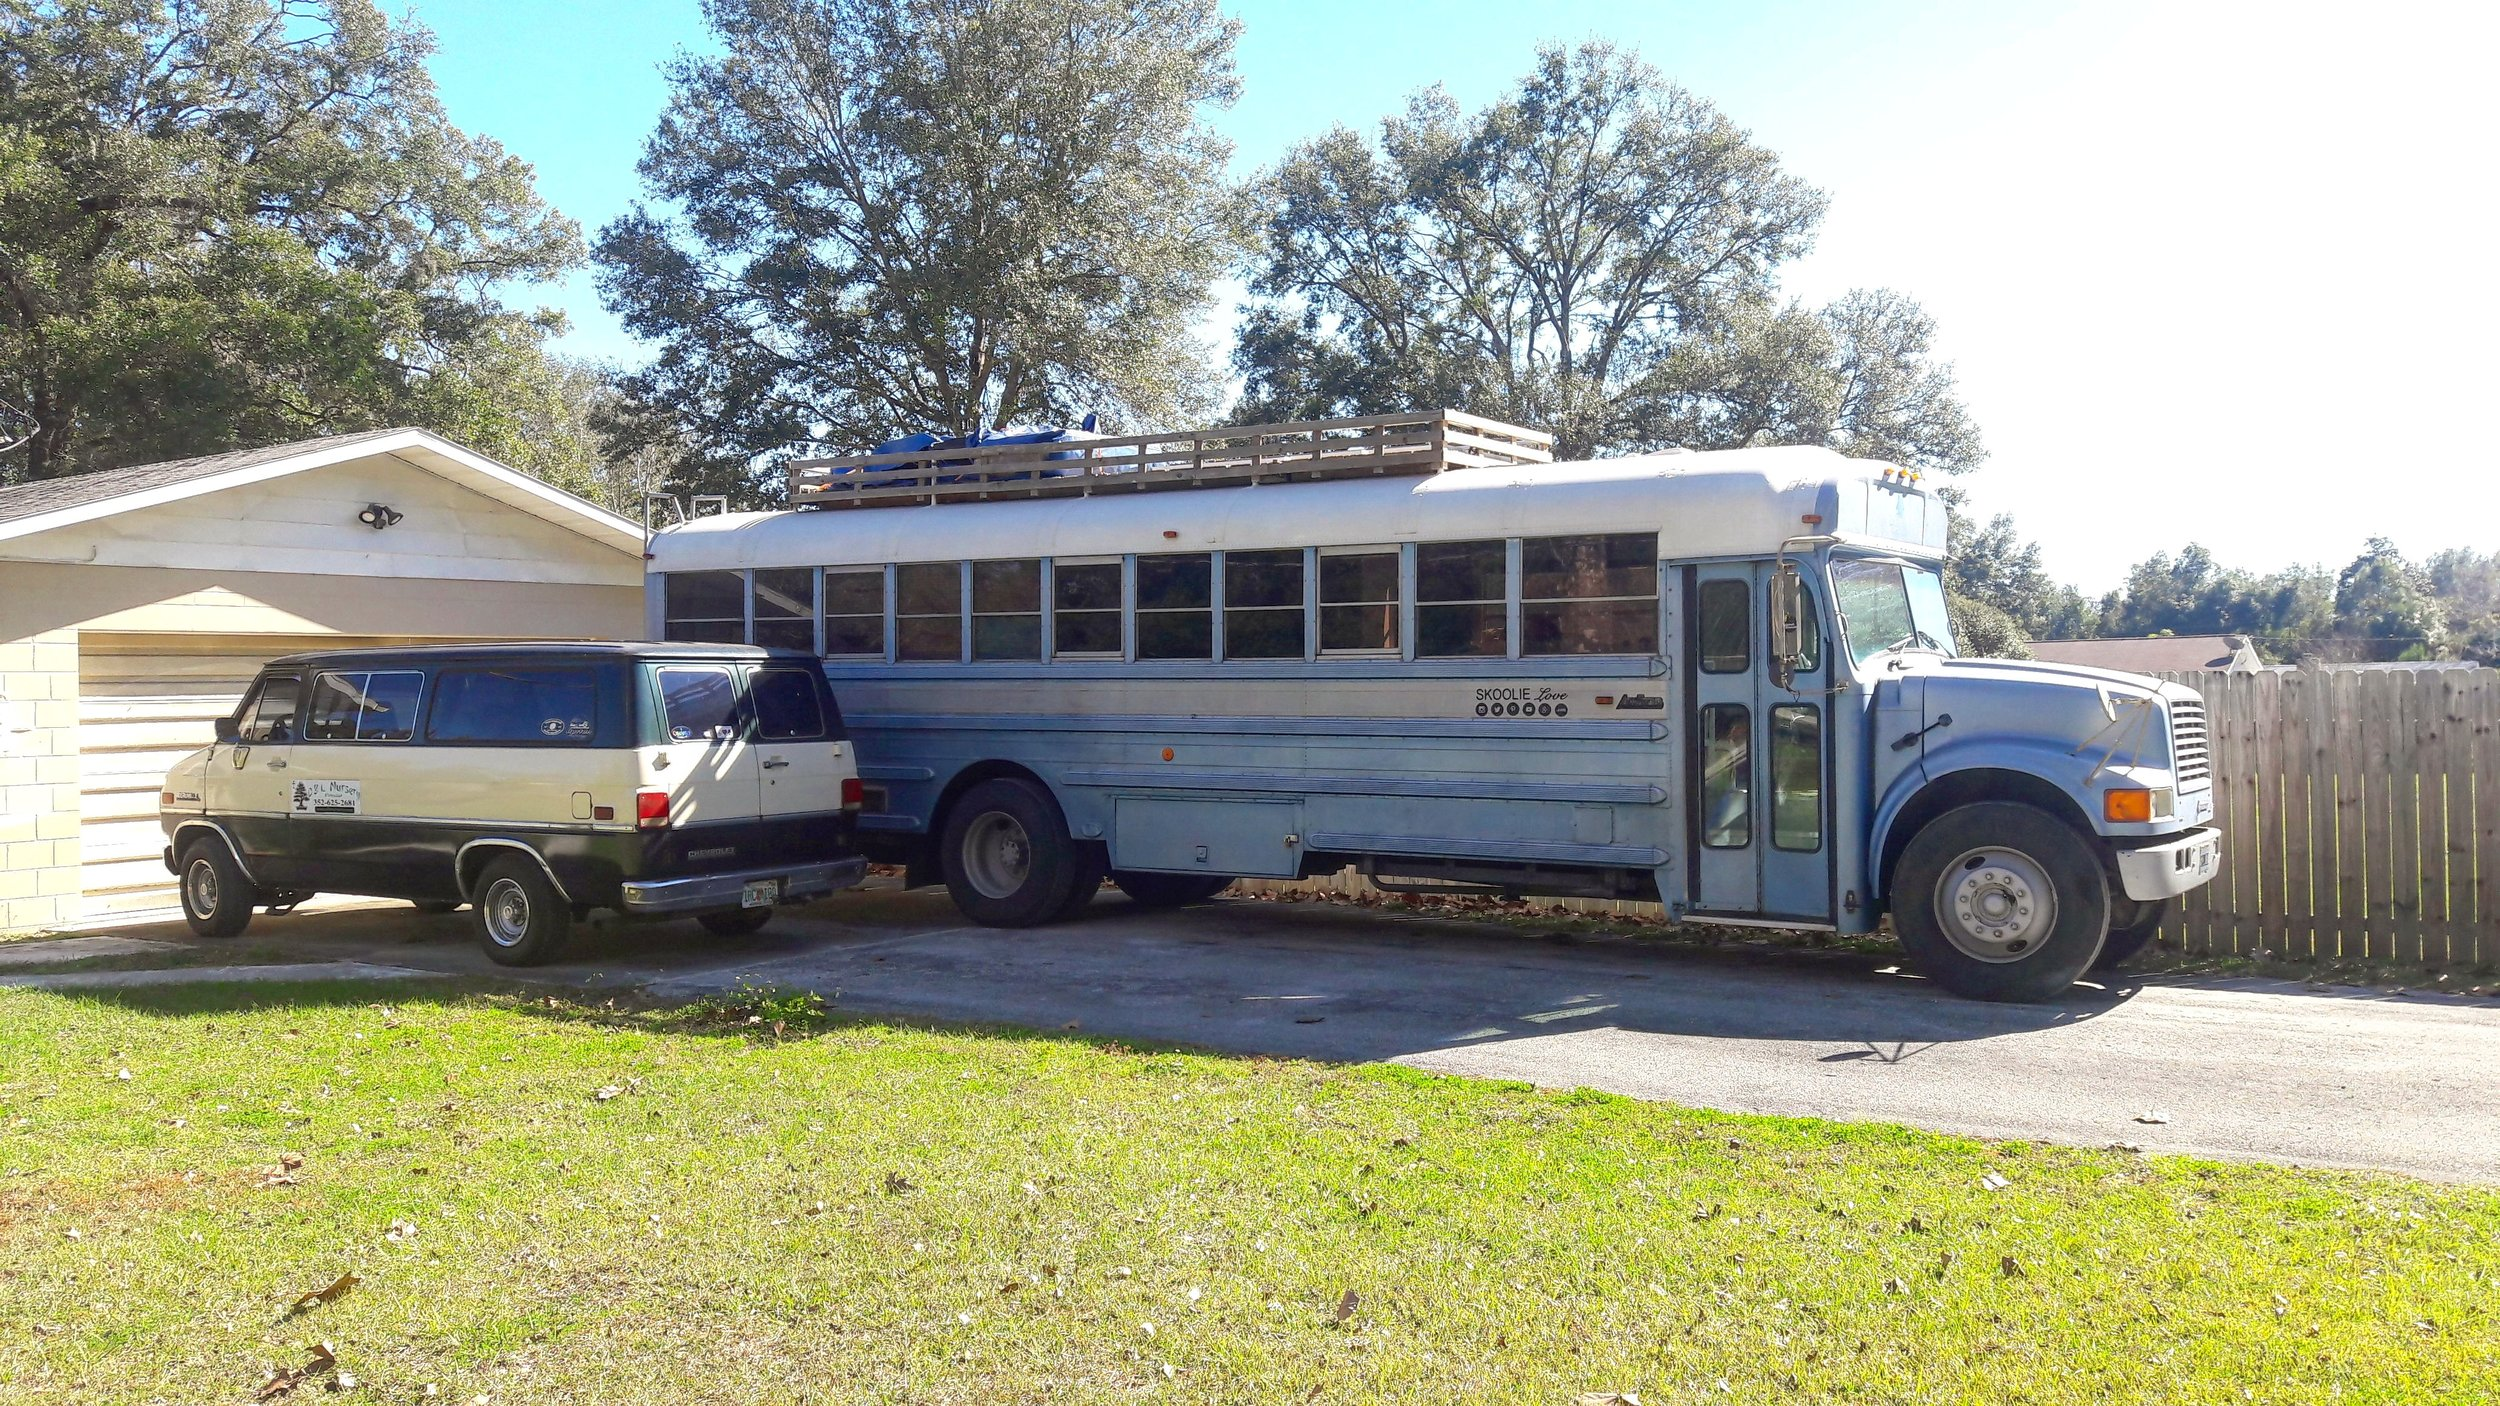 bonsai-nursery-skoolielove-florida-winter-bus-life.jpg